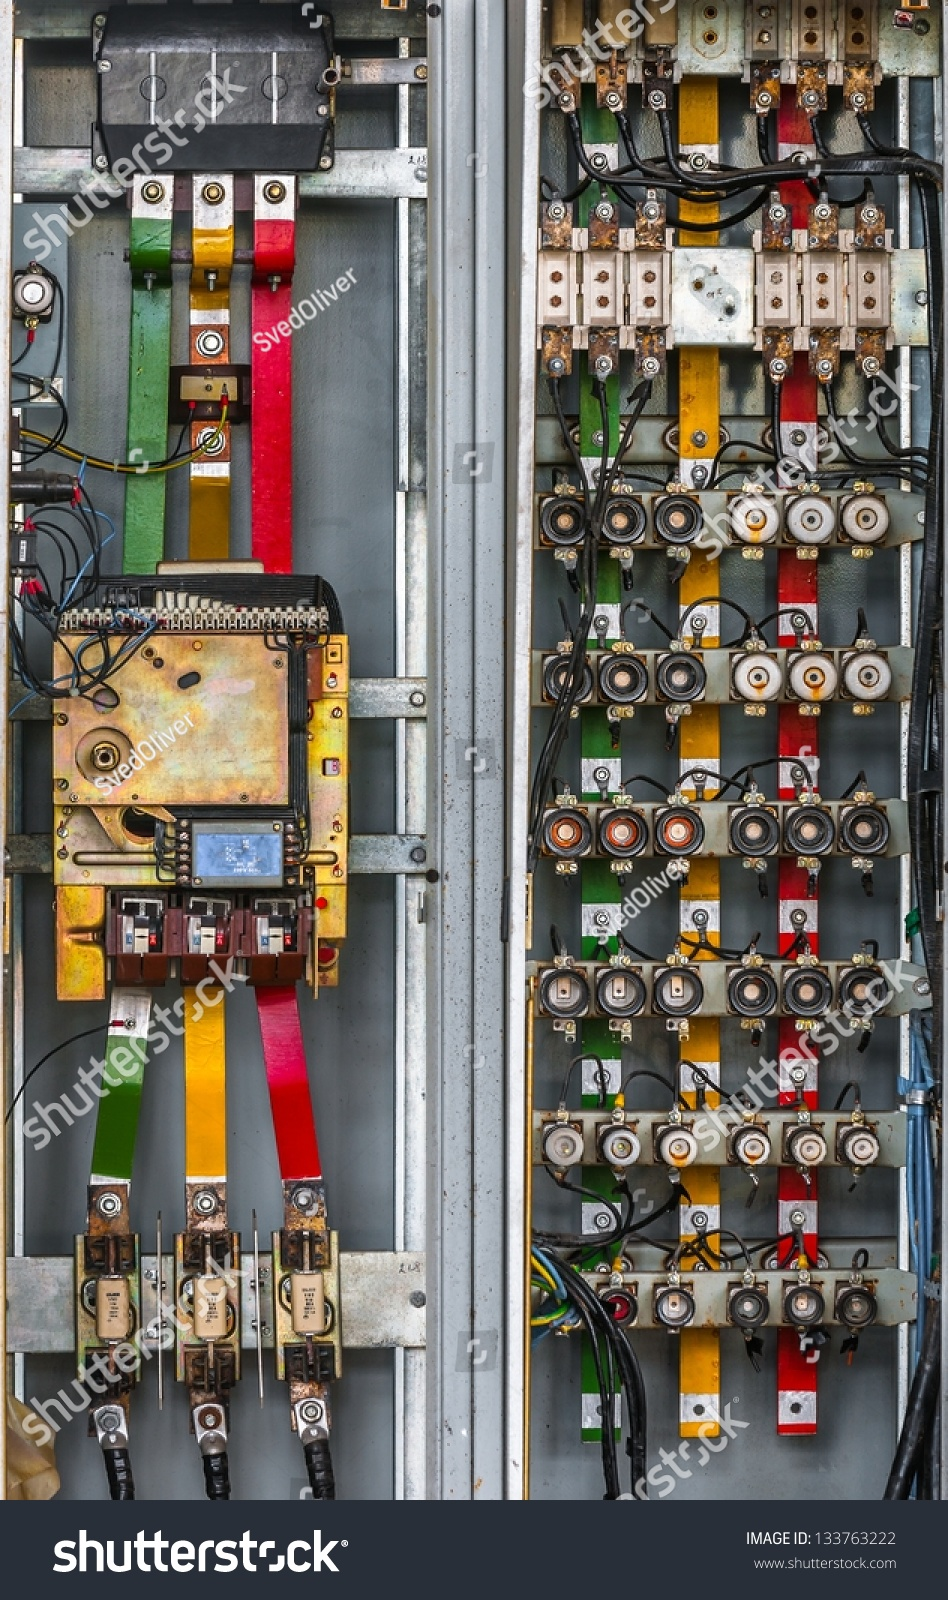 hight resolution of industrial fuse box on the wall closeup photo